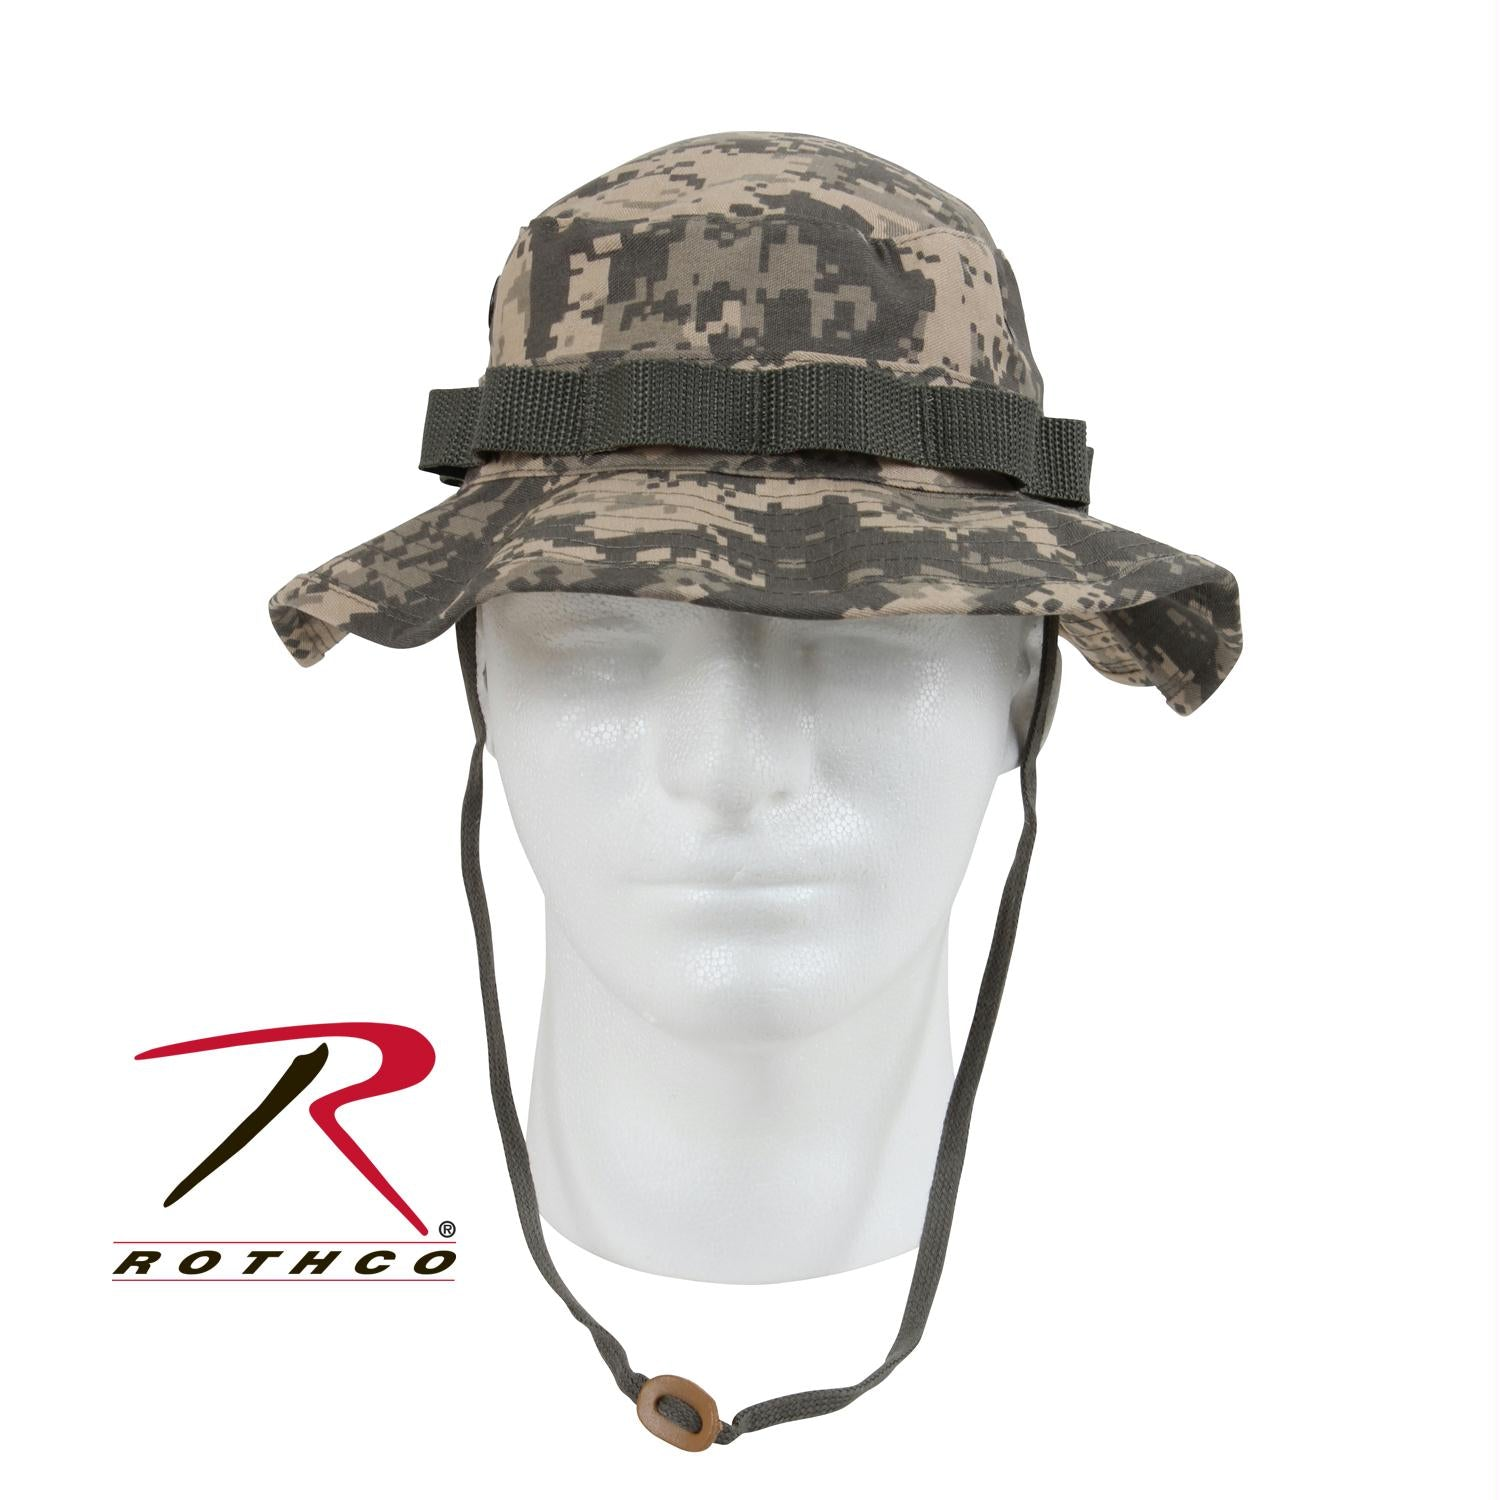 Rothco Digital Camo Boonie Hat - ACU Digital Camo / 6 3/4